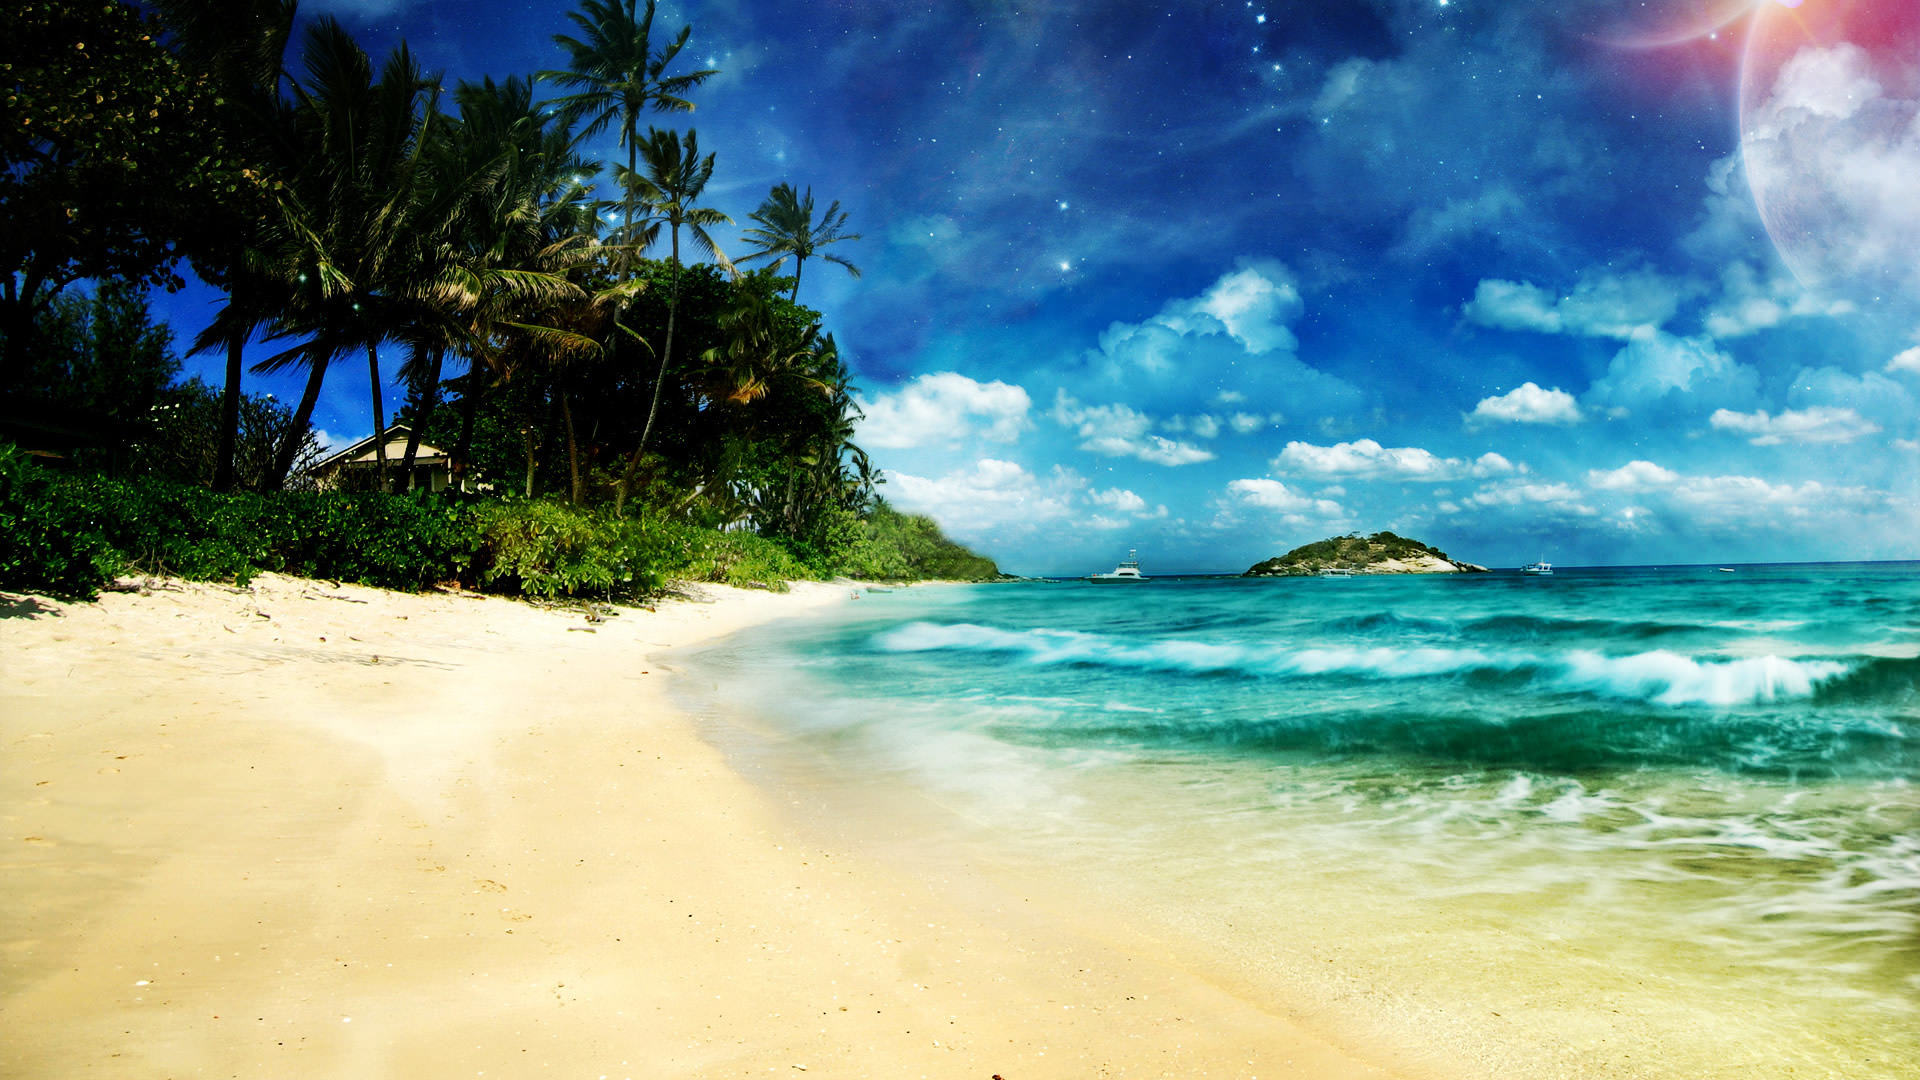 summer background wallpapers desktop nature wallpaper keyword 1920x1080